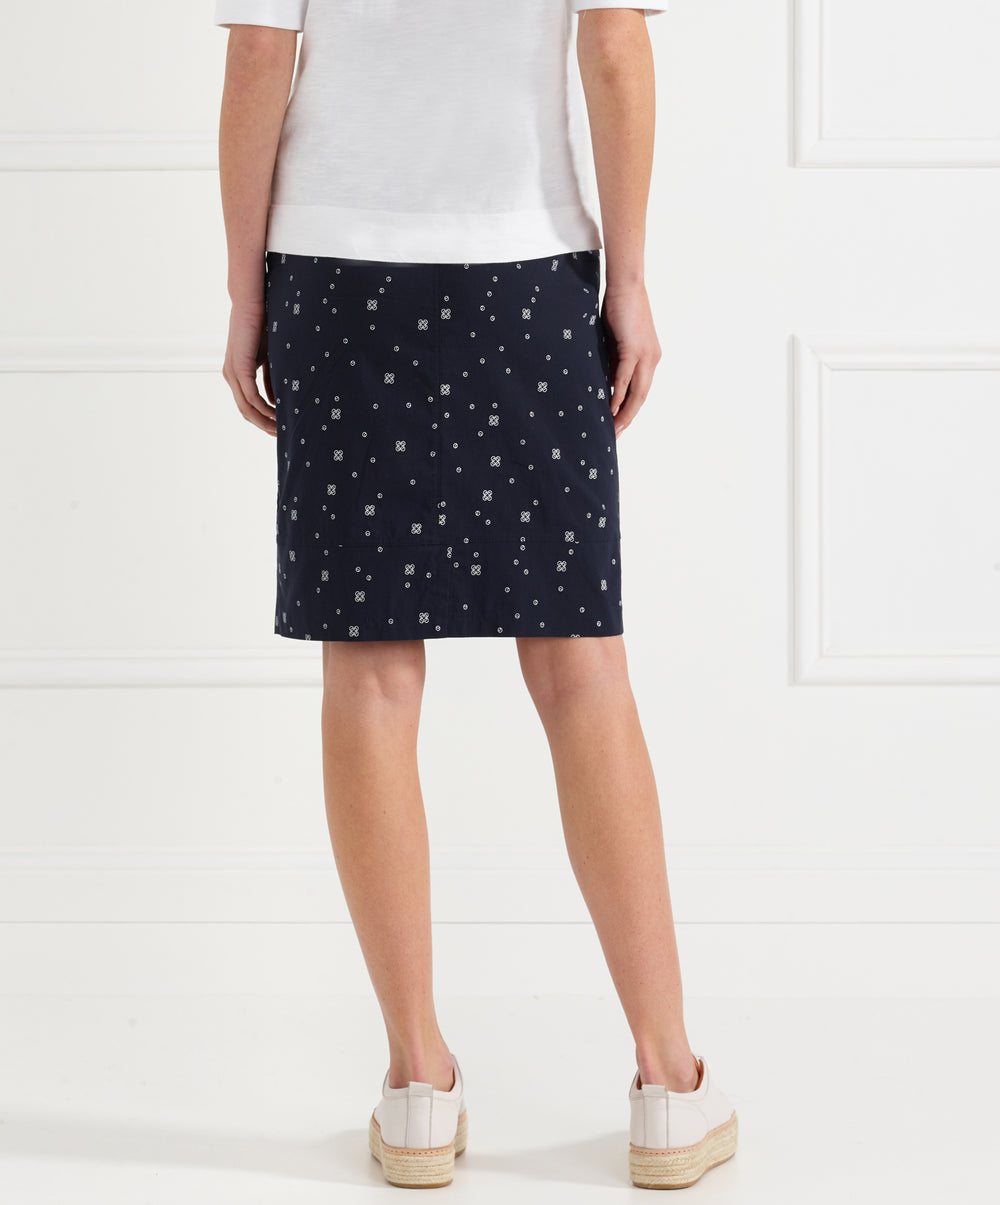 Acrobat Disc Layer Skirt